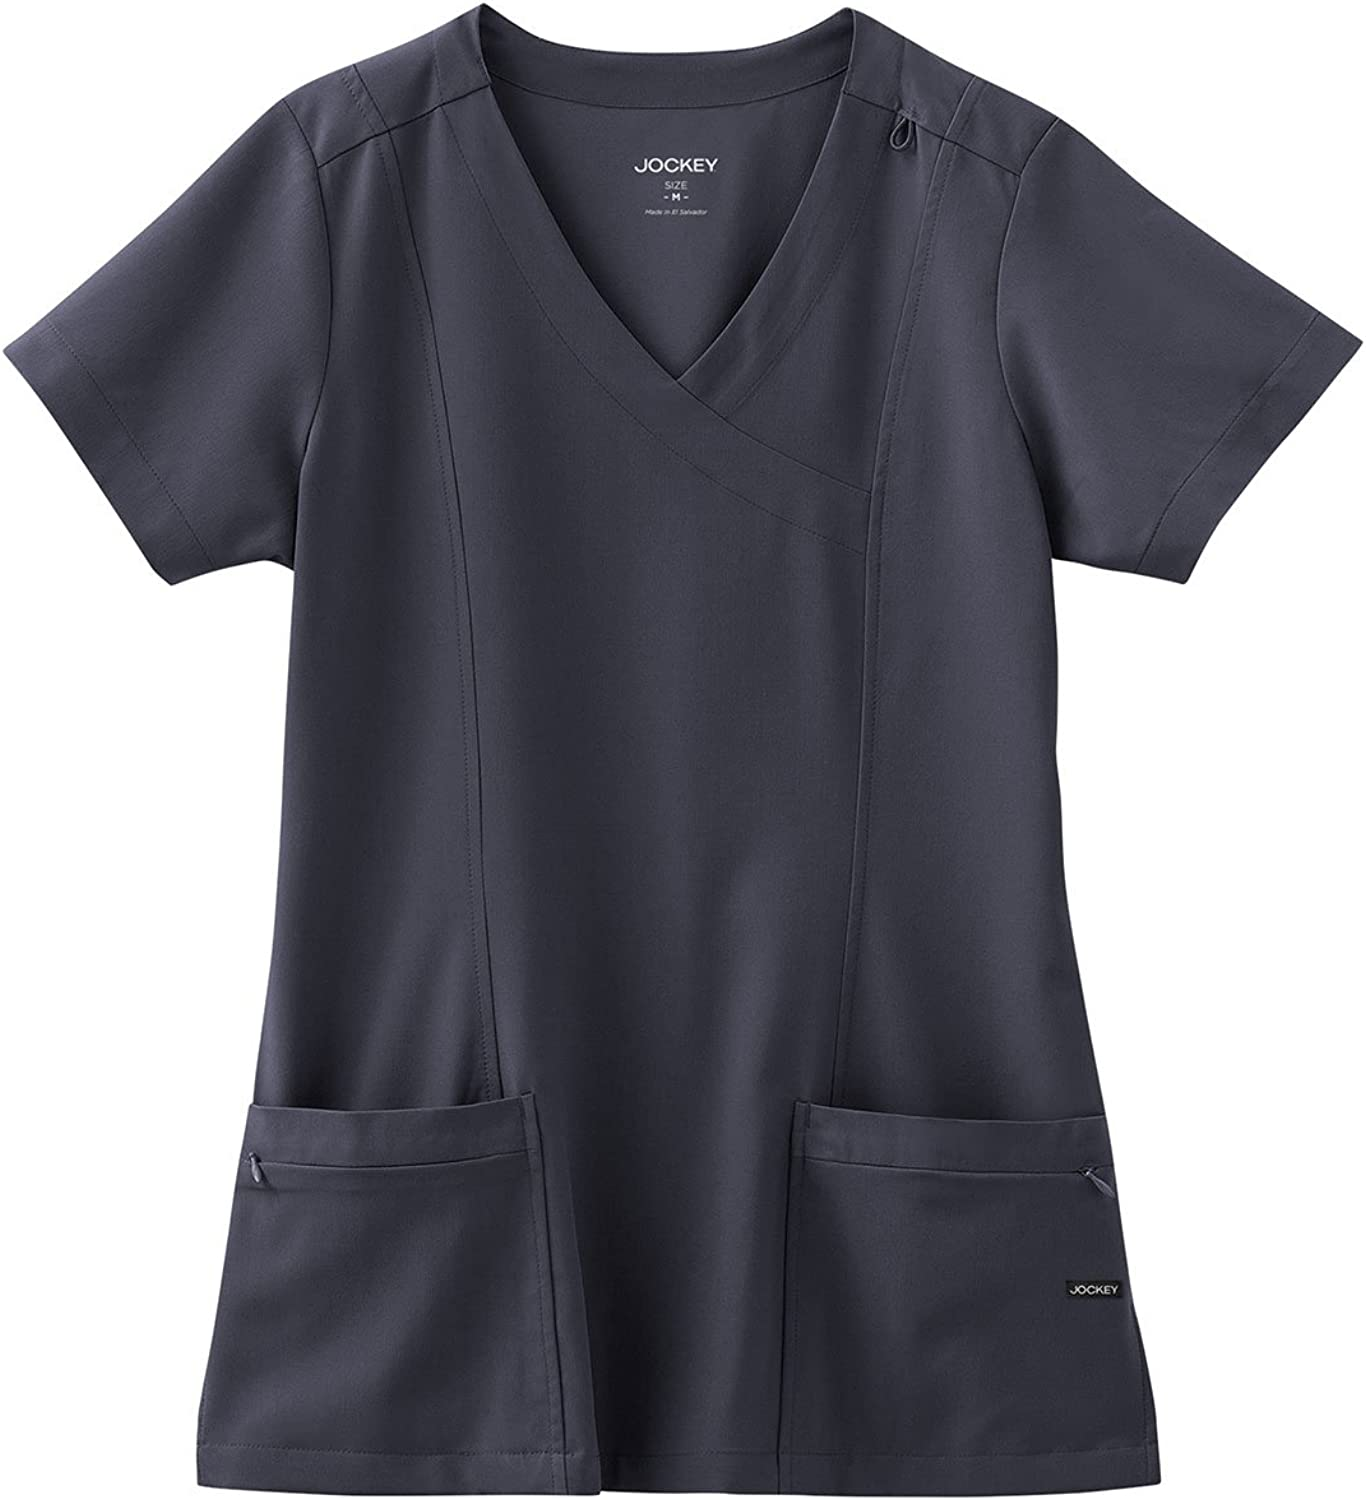 Classic Fit Collection By Jockey Women's Mock Wrap Scrub Top Large Charcoal